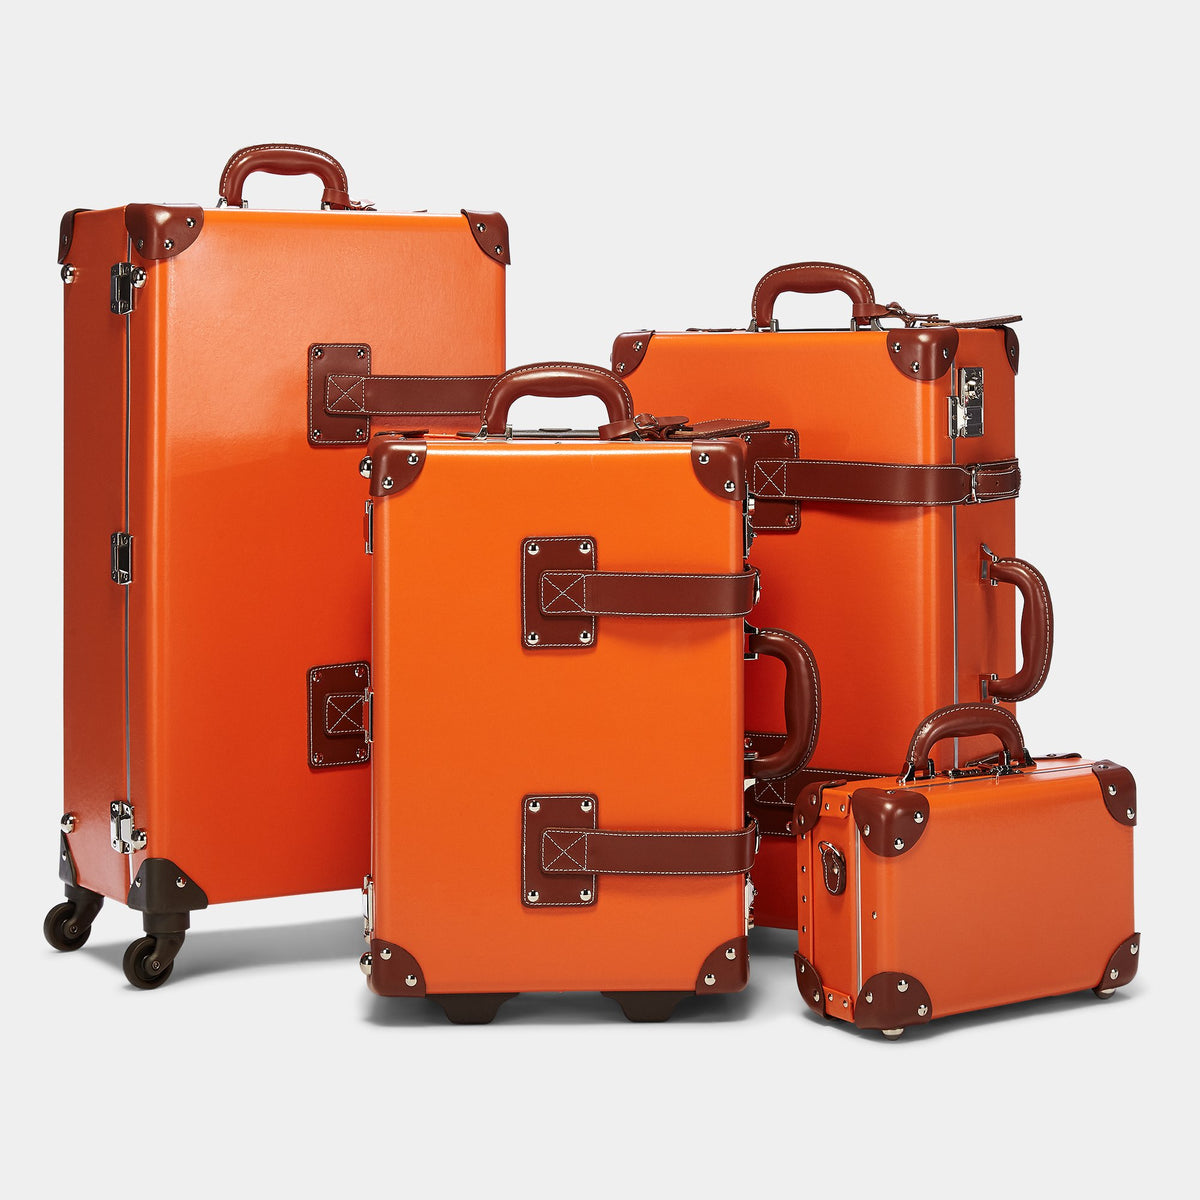 The Anthropologist Vanity in Orange - Vintage Style Leather Case - Alongside matching cases from the Anthropologist Orange collection